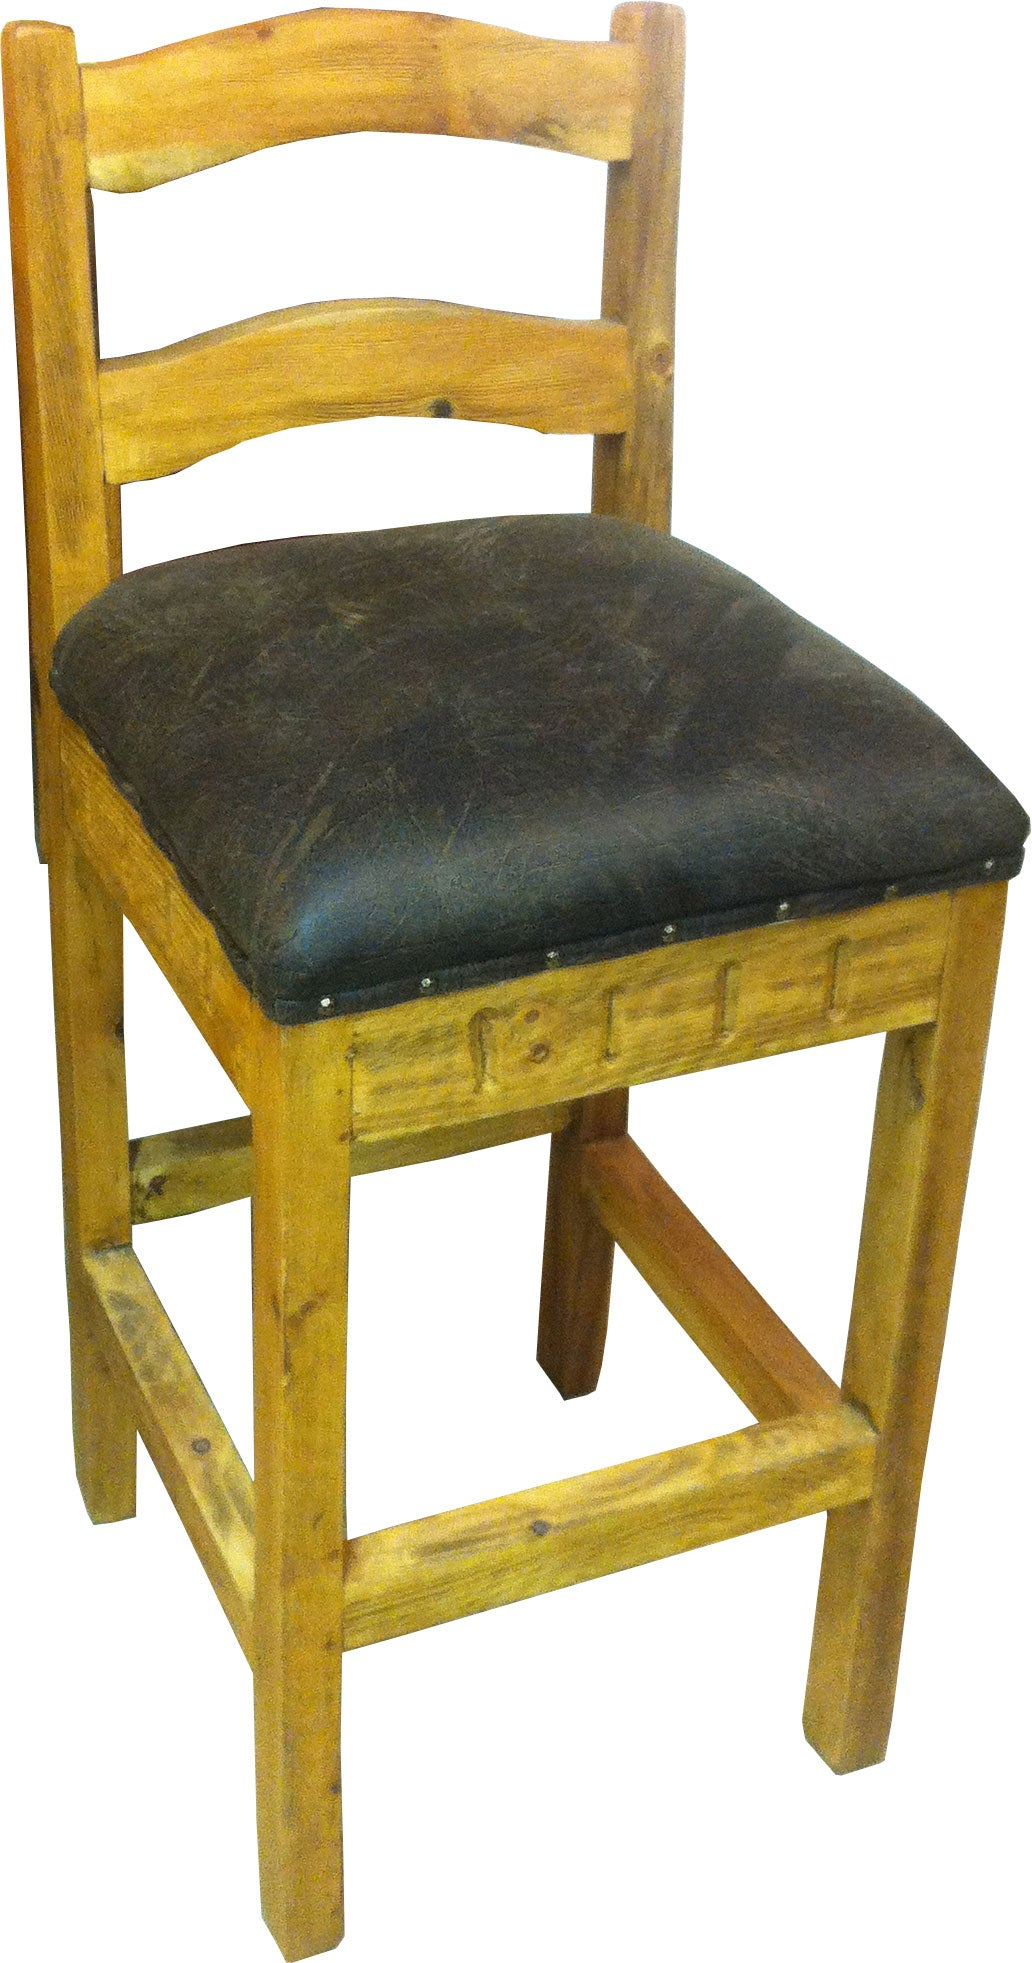 Provenzal Bar Stool Upholstered